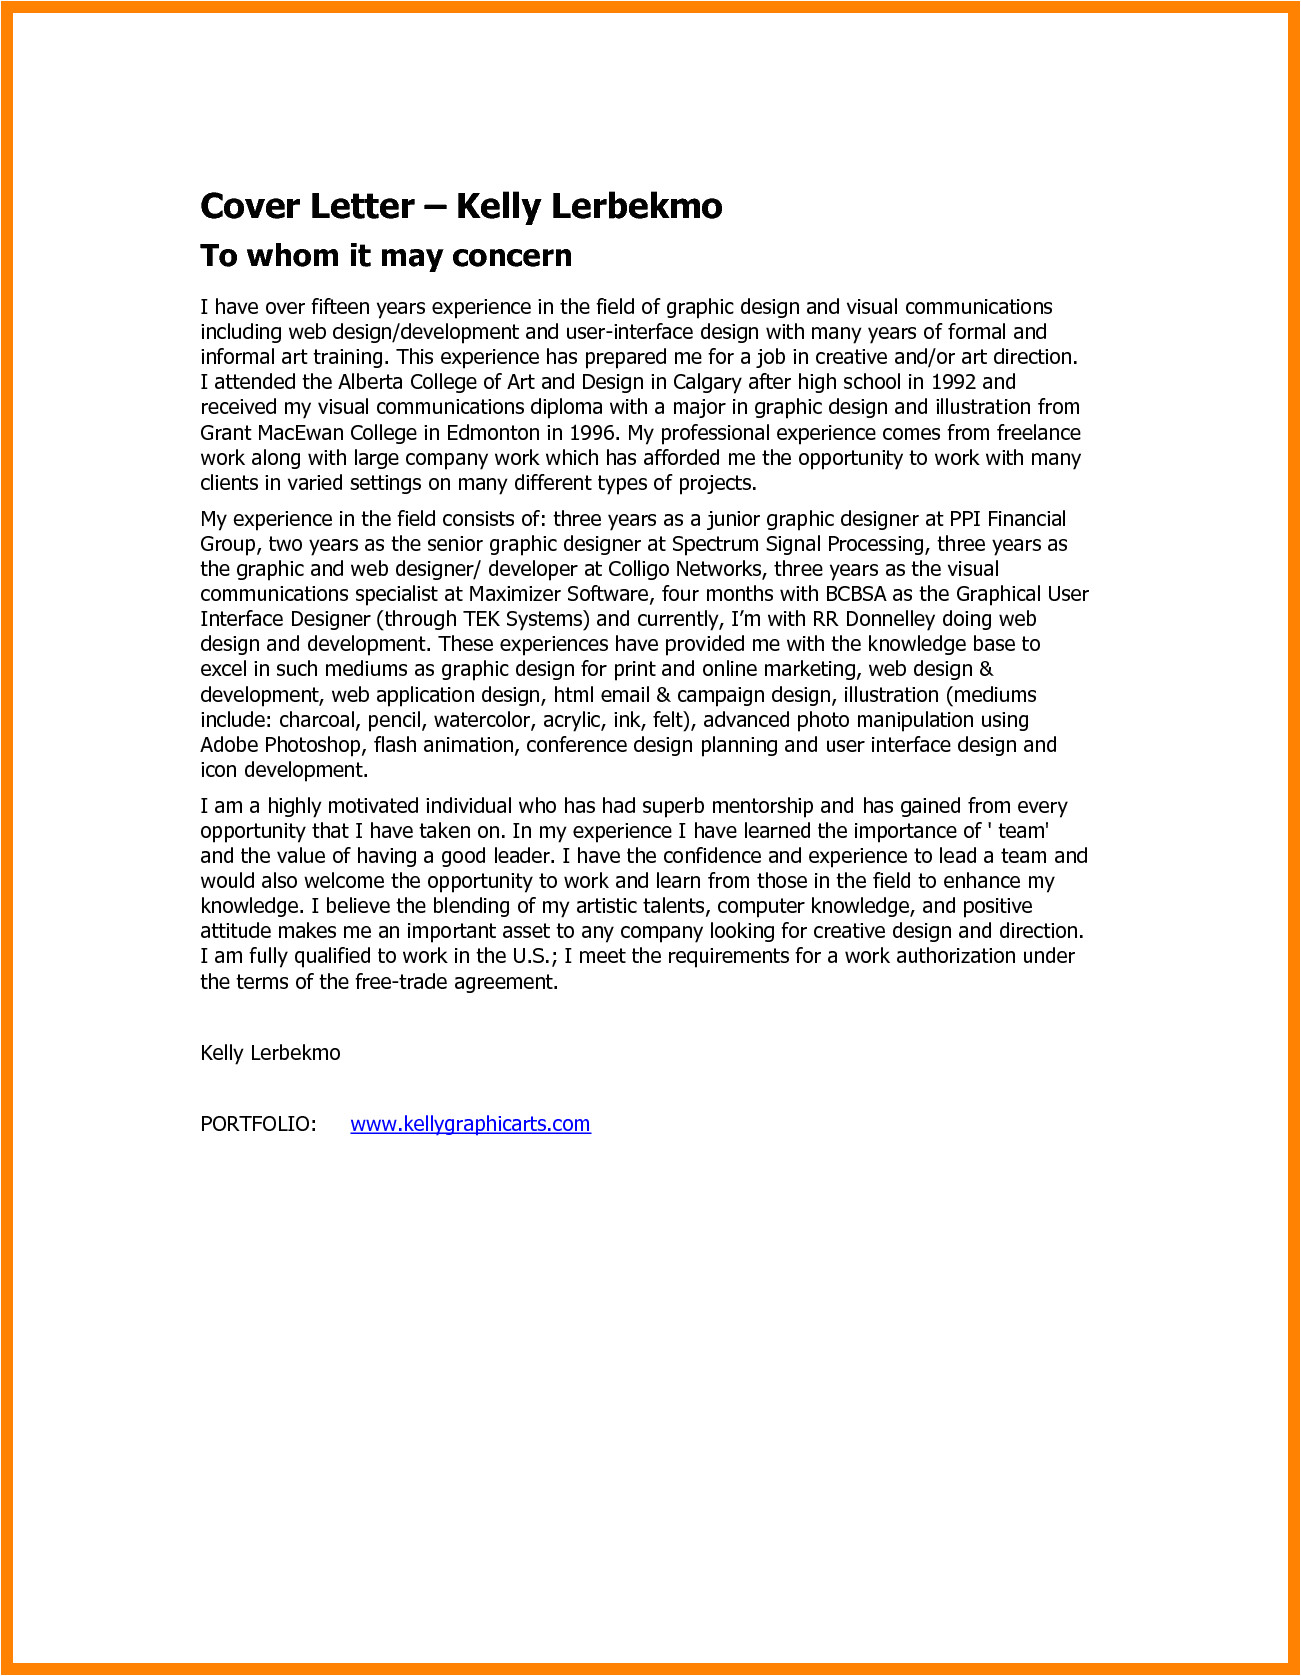 Cover Letter to whom It May Concern Alternative Cover Letter to whom It May Concern Gplusnick